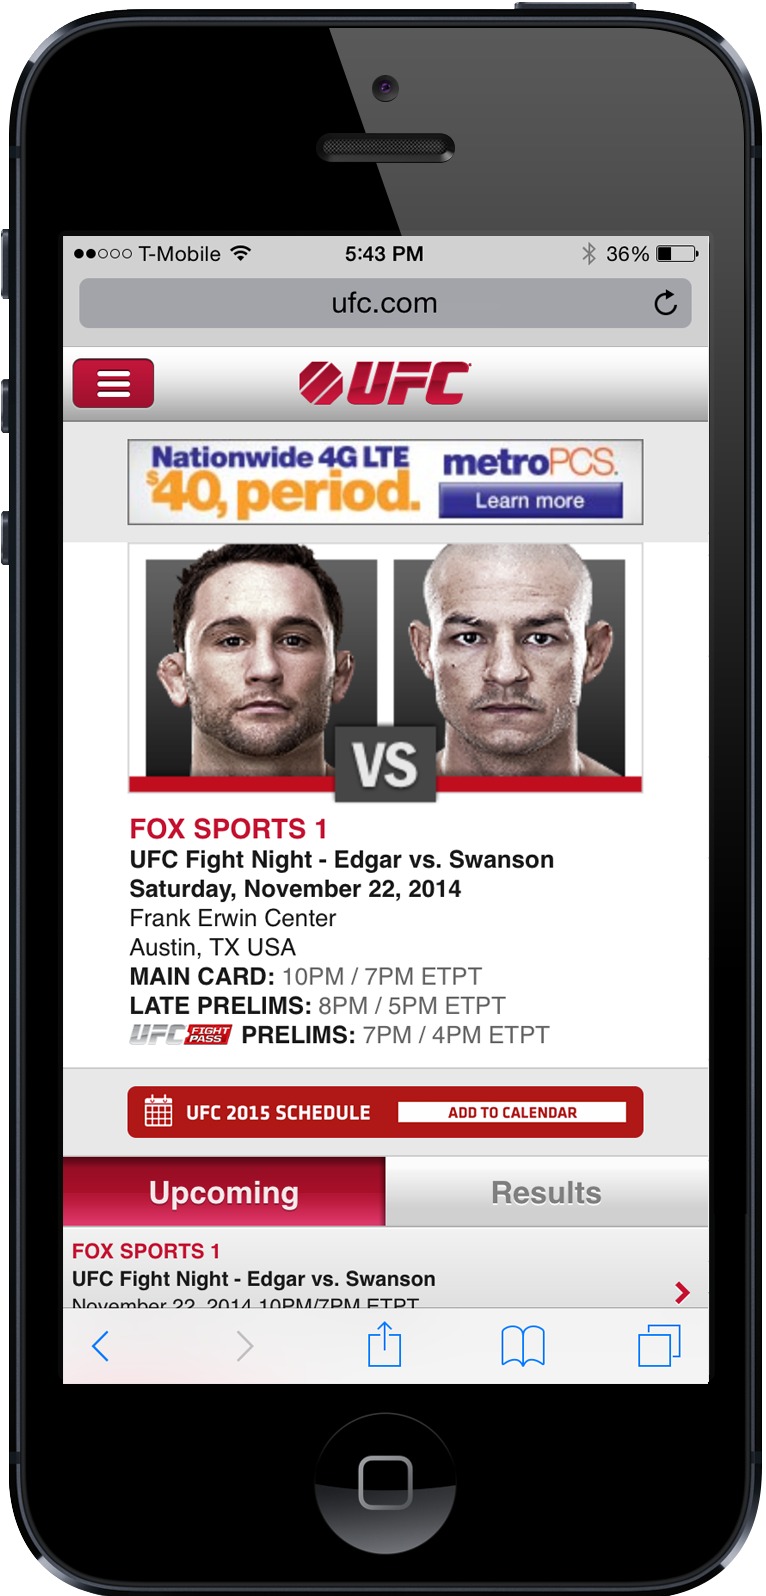 Add to calendar banner on UFC mobile page